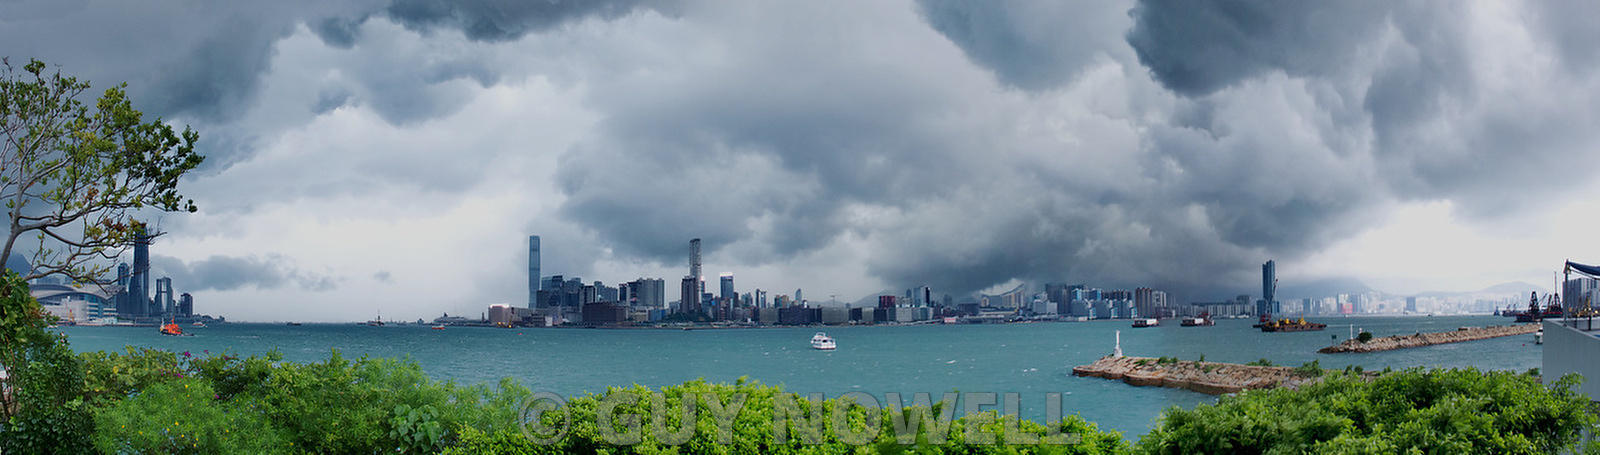 Storm_Pano1